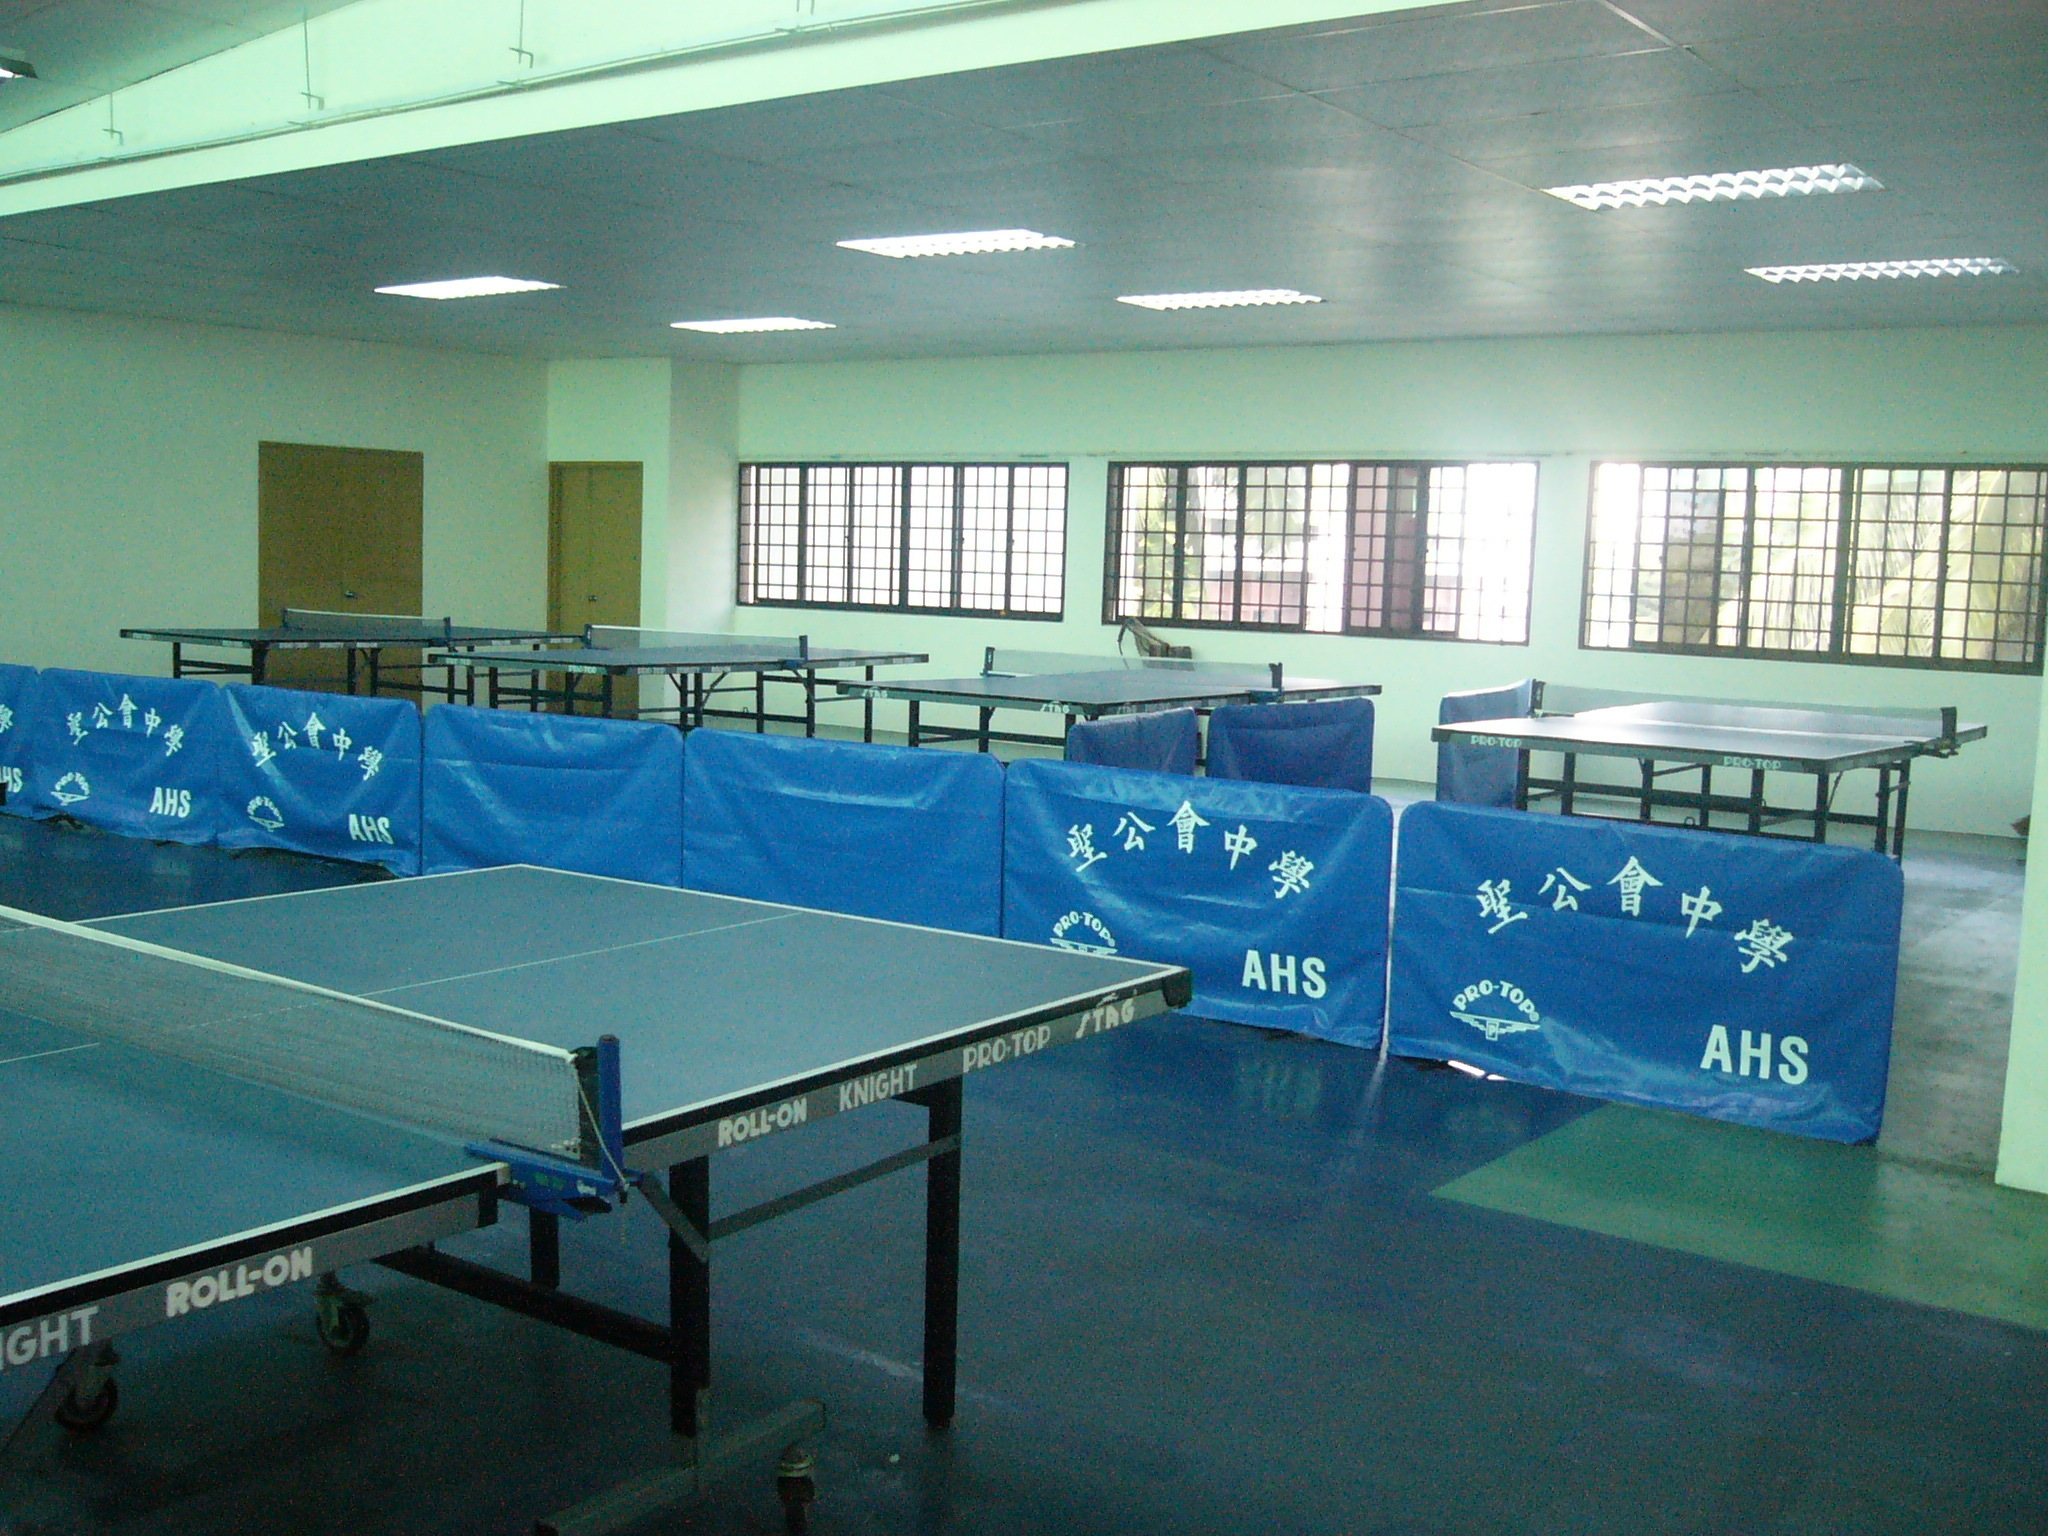 COE_Sports_Facilities_06.JPG